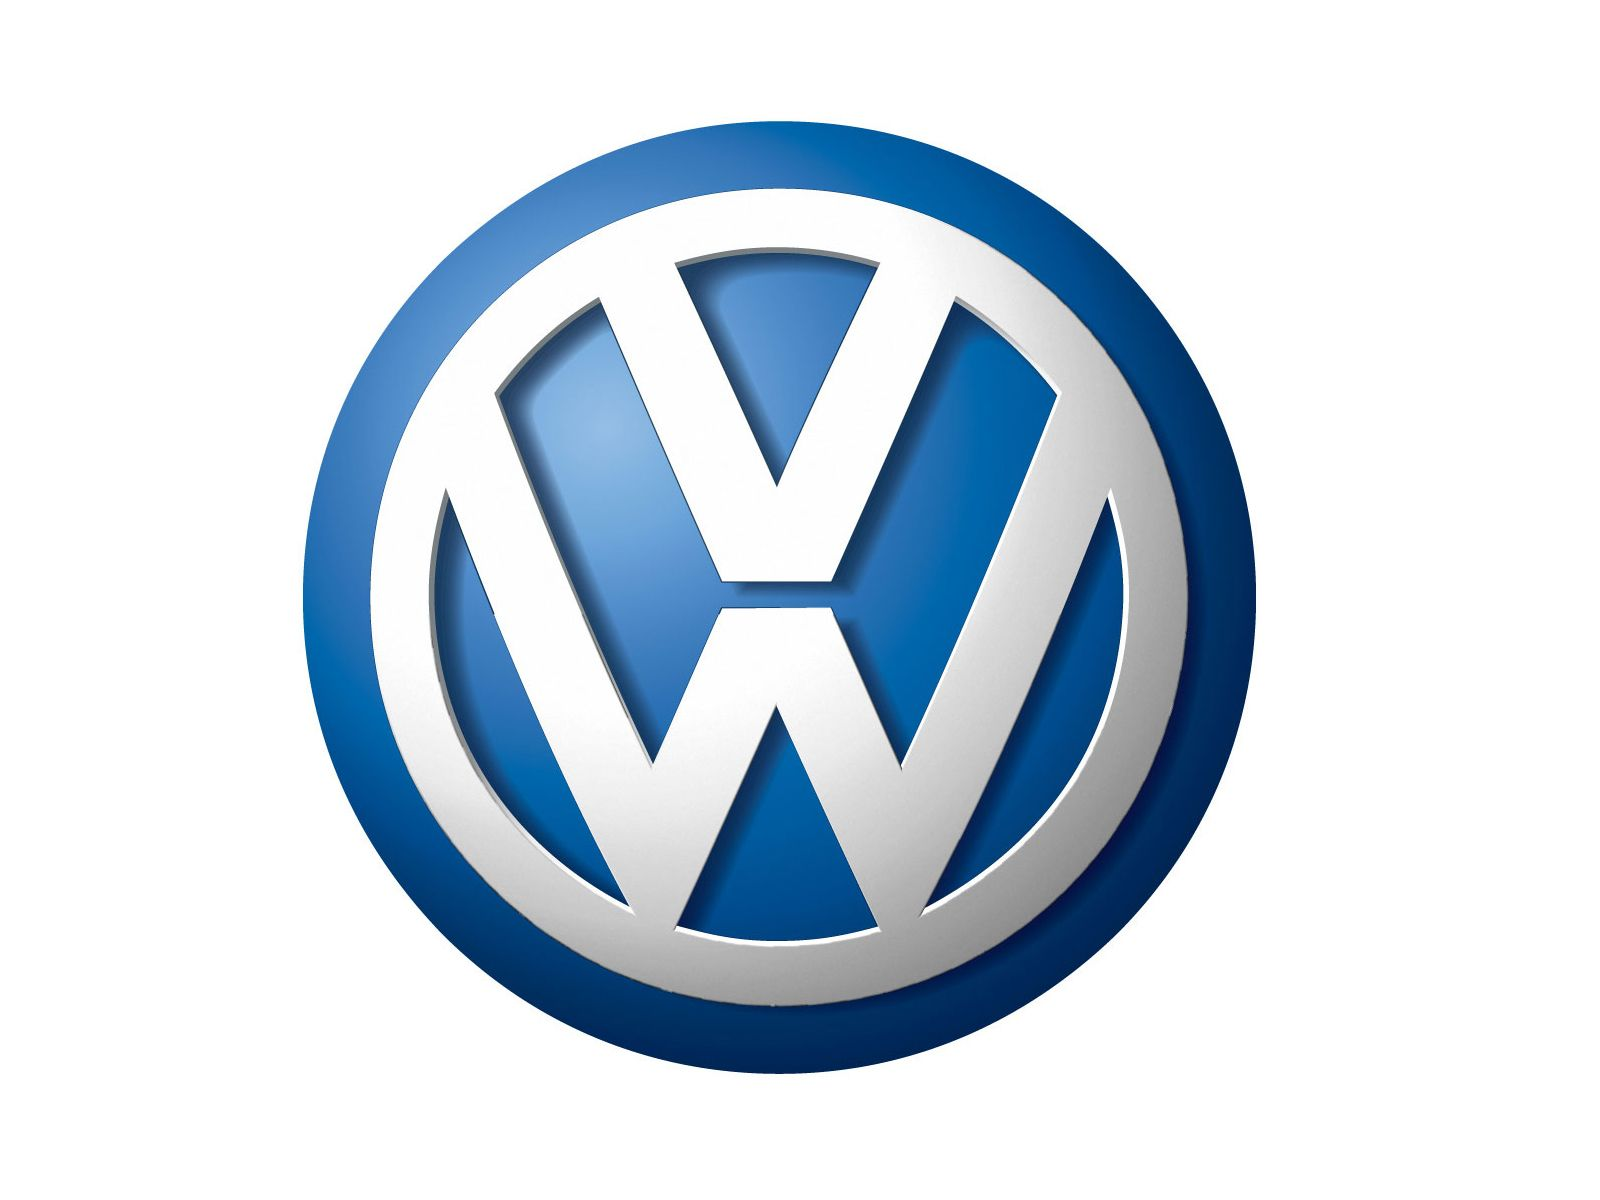 Volkswagen Toys Are My Favorite Collection Volkswagen Volkswagen Logo Volkswagen Phaeton